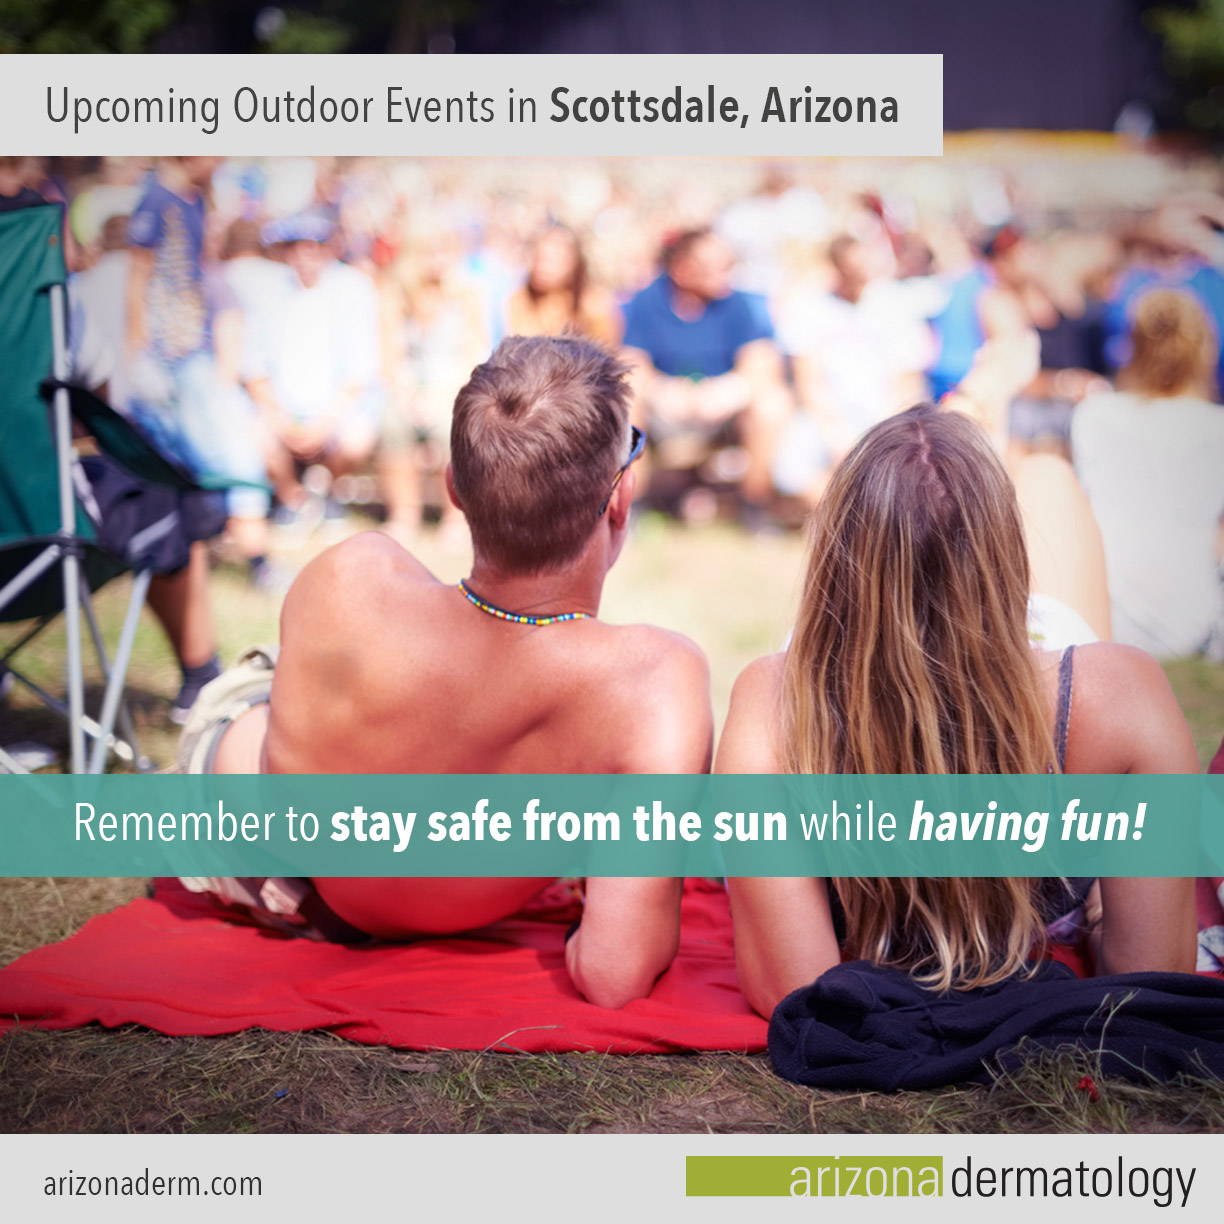 Upcoming Outdoor Events in Scottsdale, Arizona